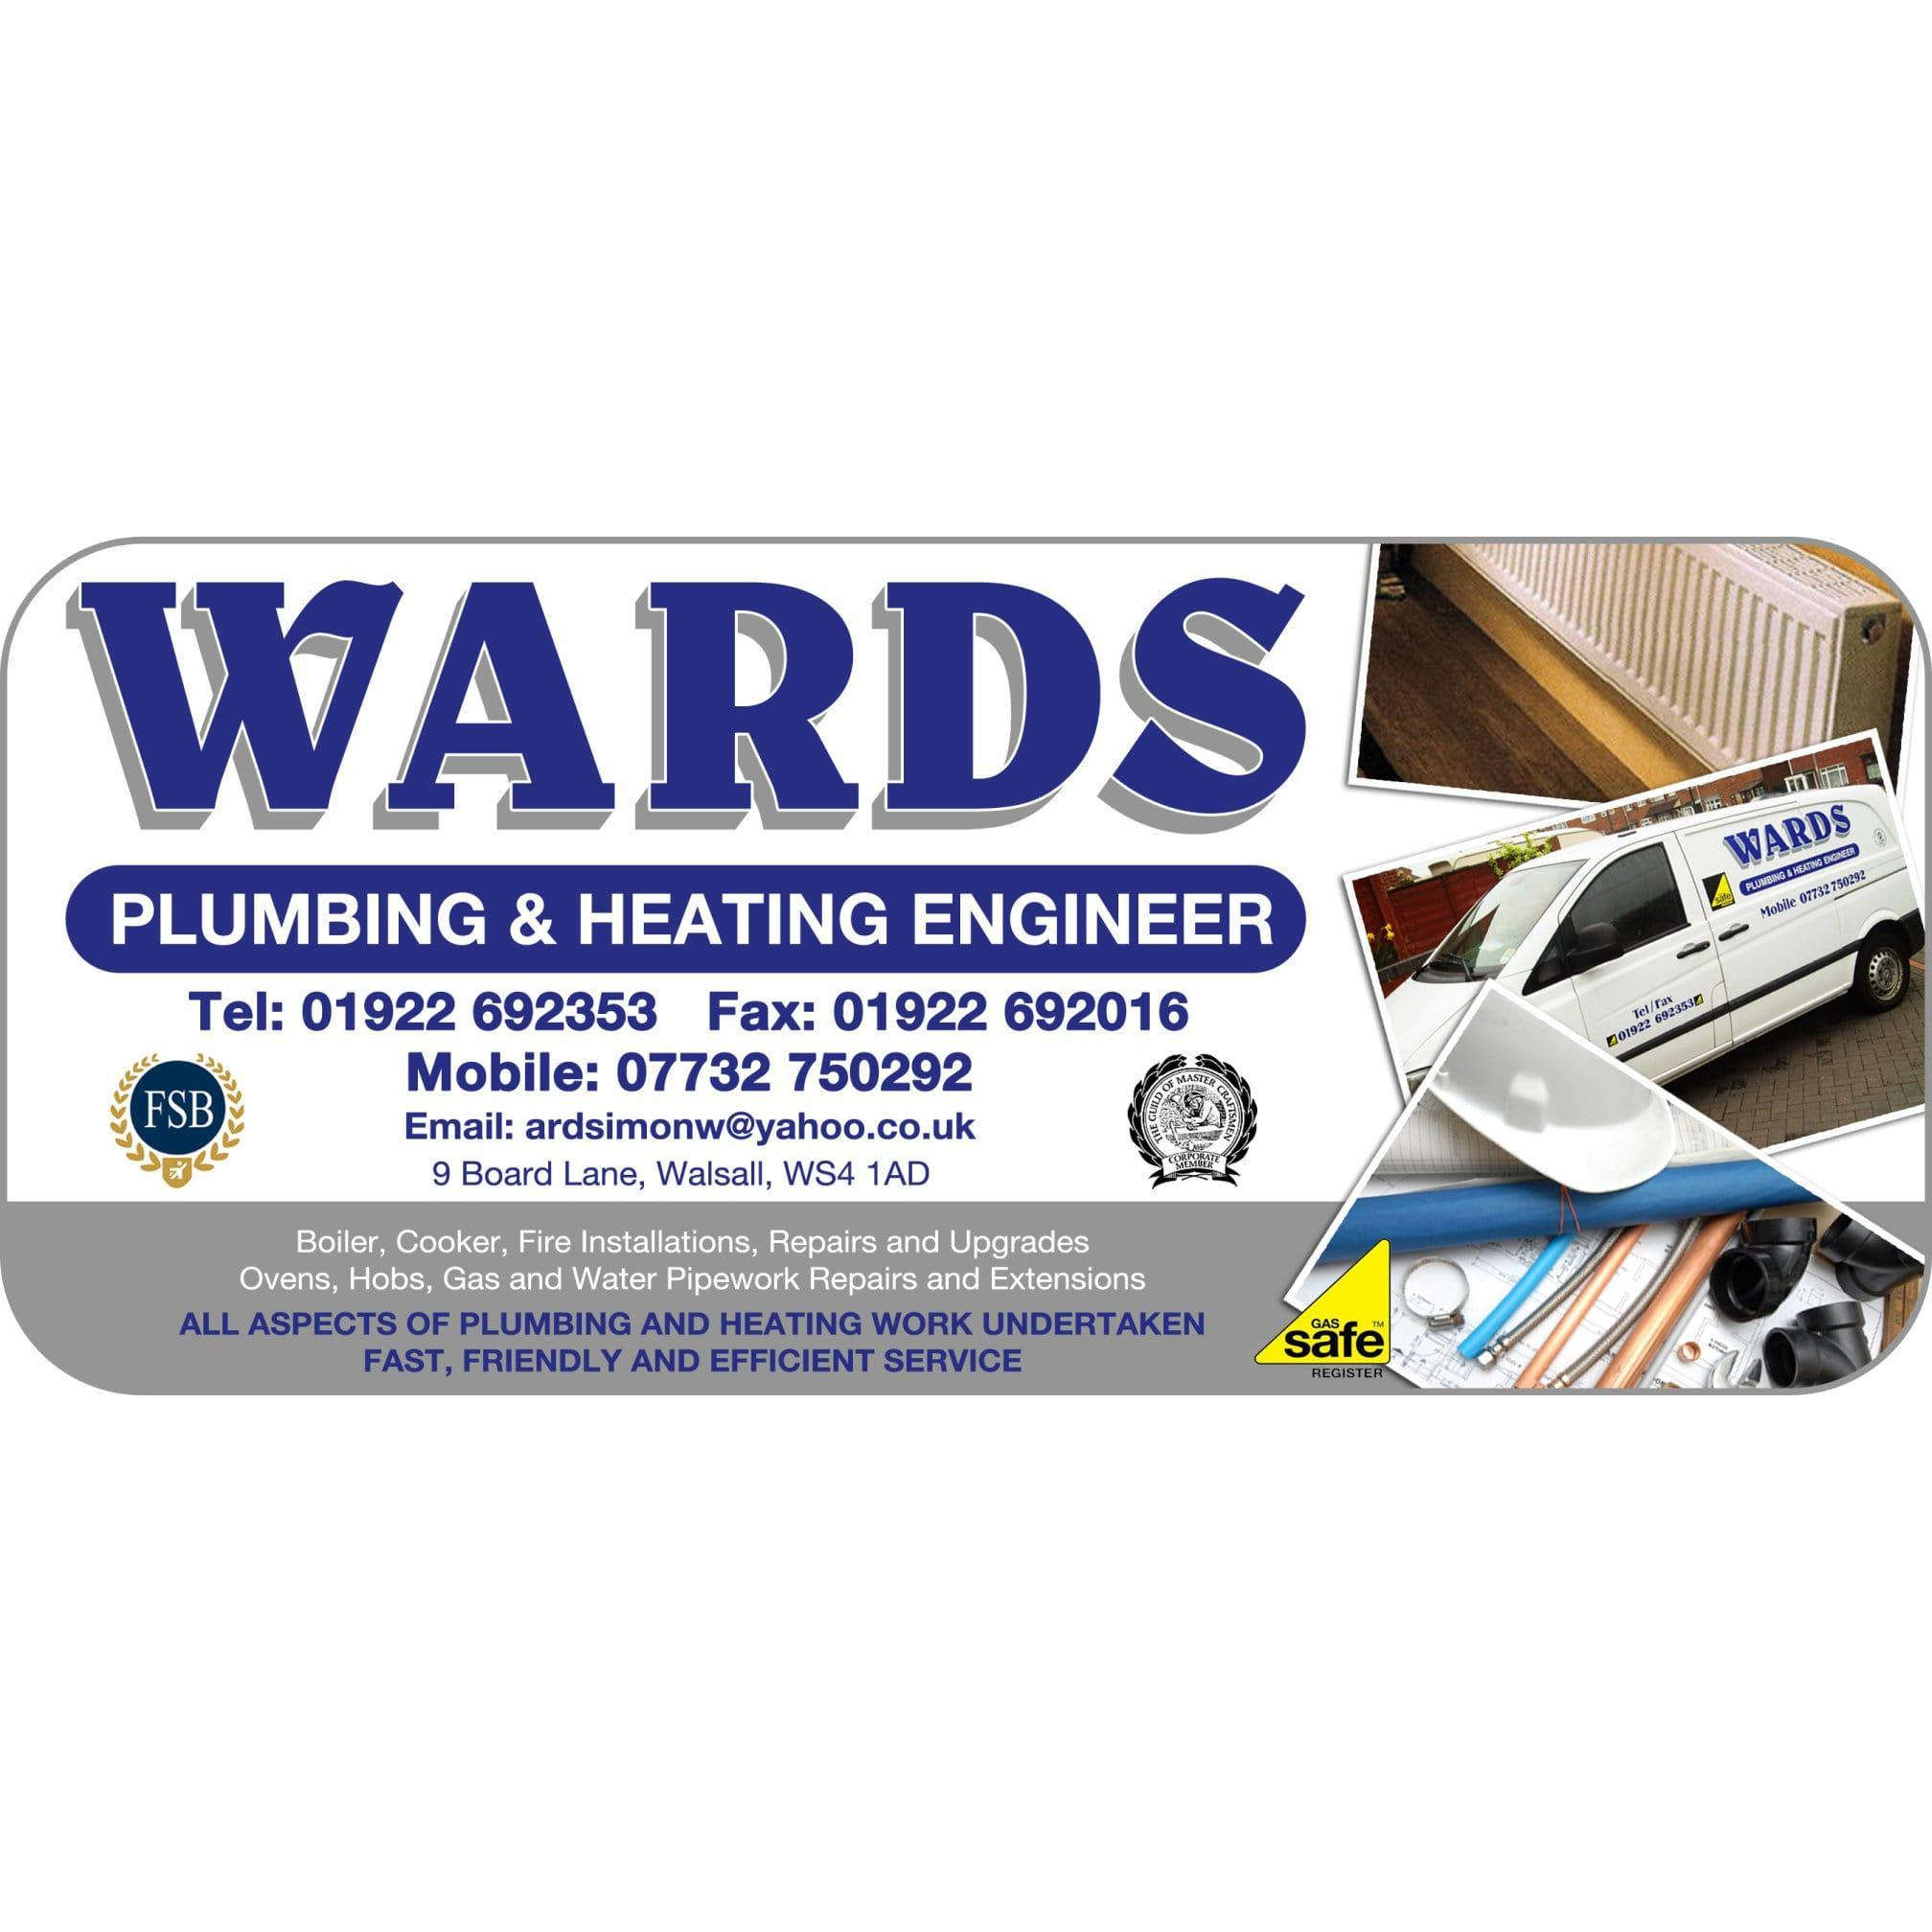 Wards Plumbing & Heating - Walsall, West Midlands WS4 1AD - 07732 750292 | ShowMeLocal.com